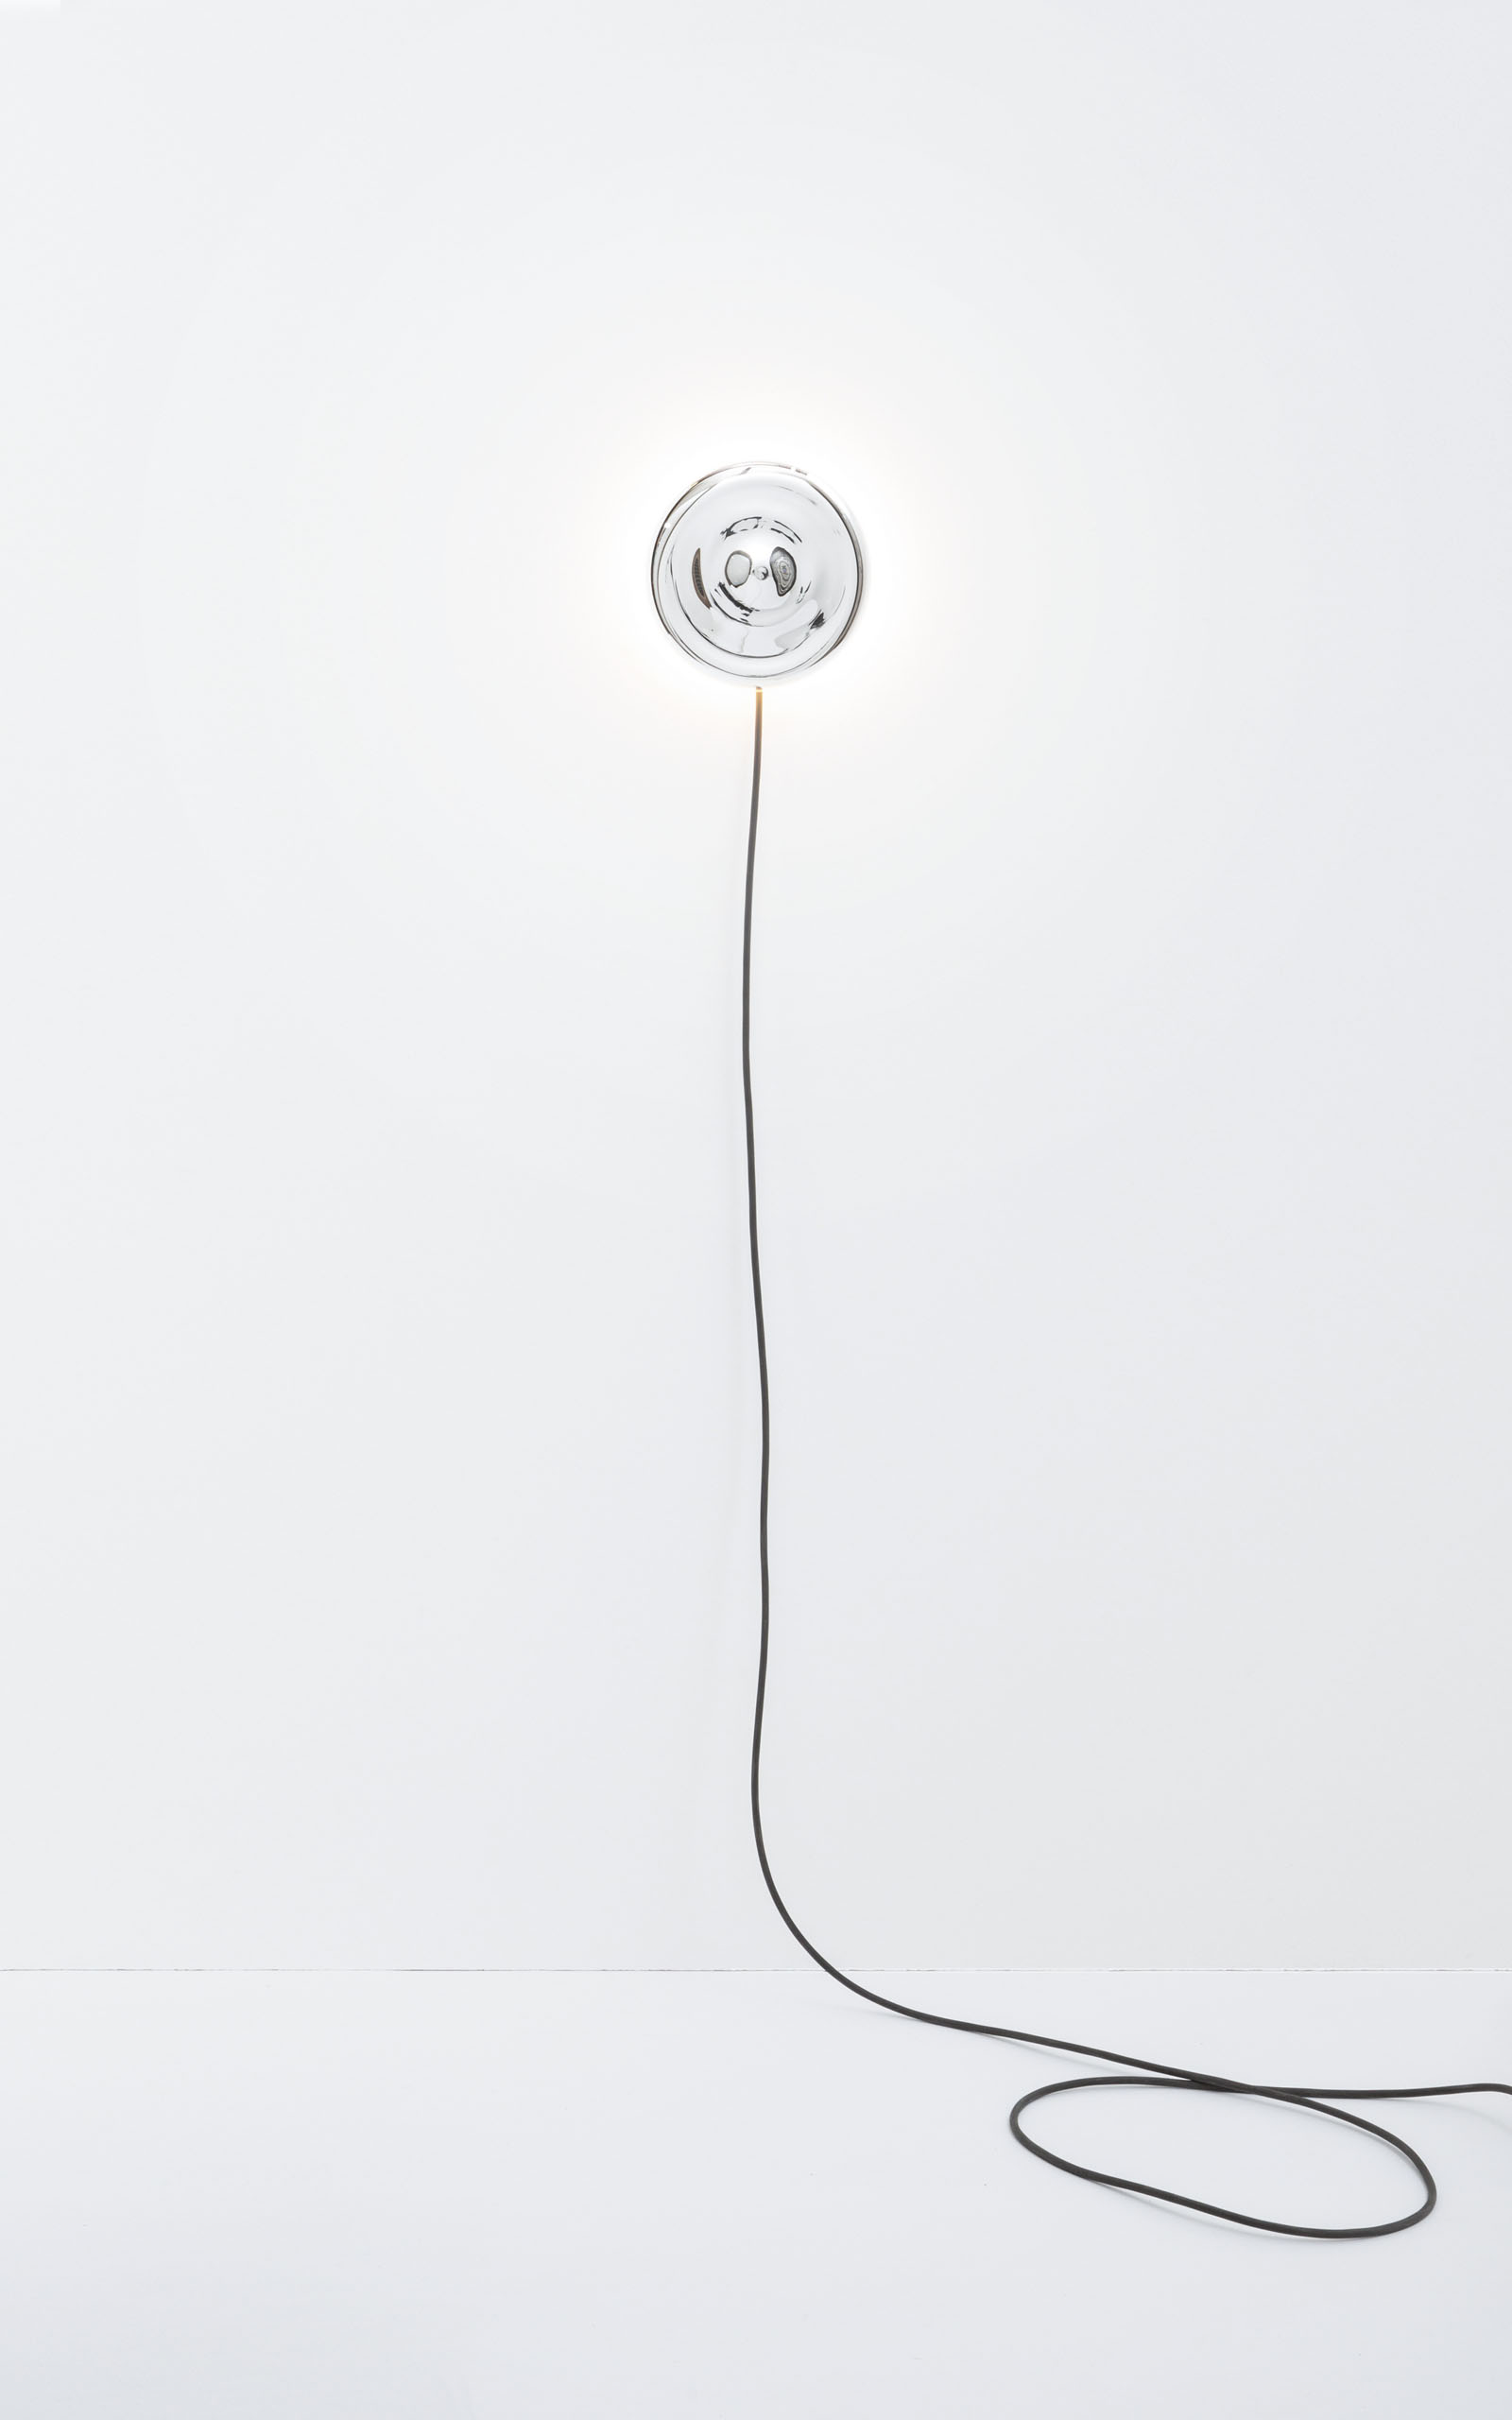 The mirrored body of the wall light is hanging from the wall with the cable starting to curl on the floor.